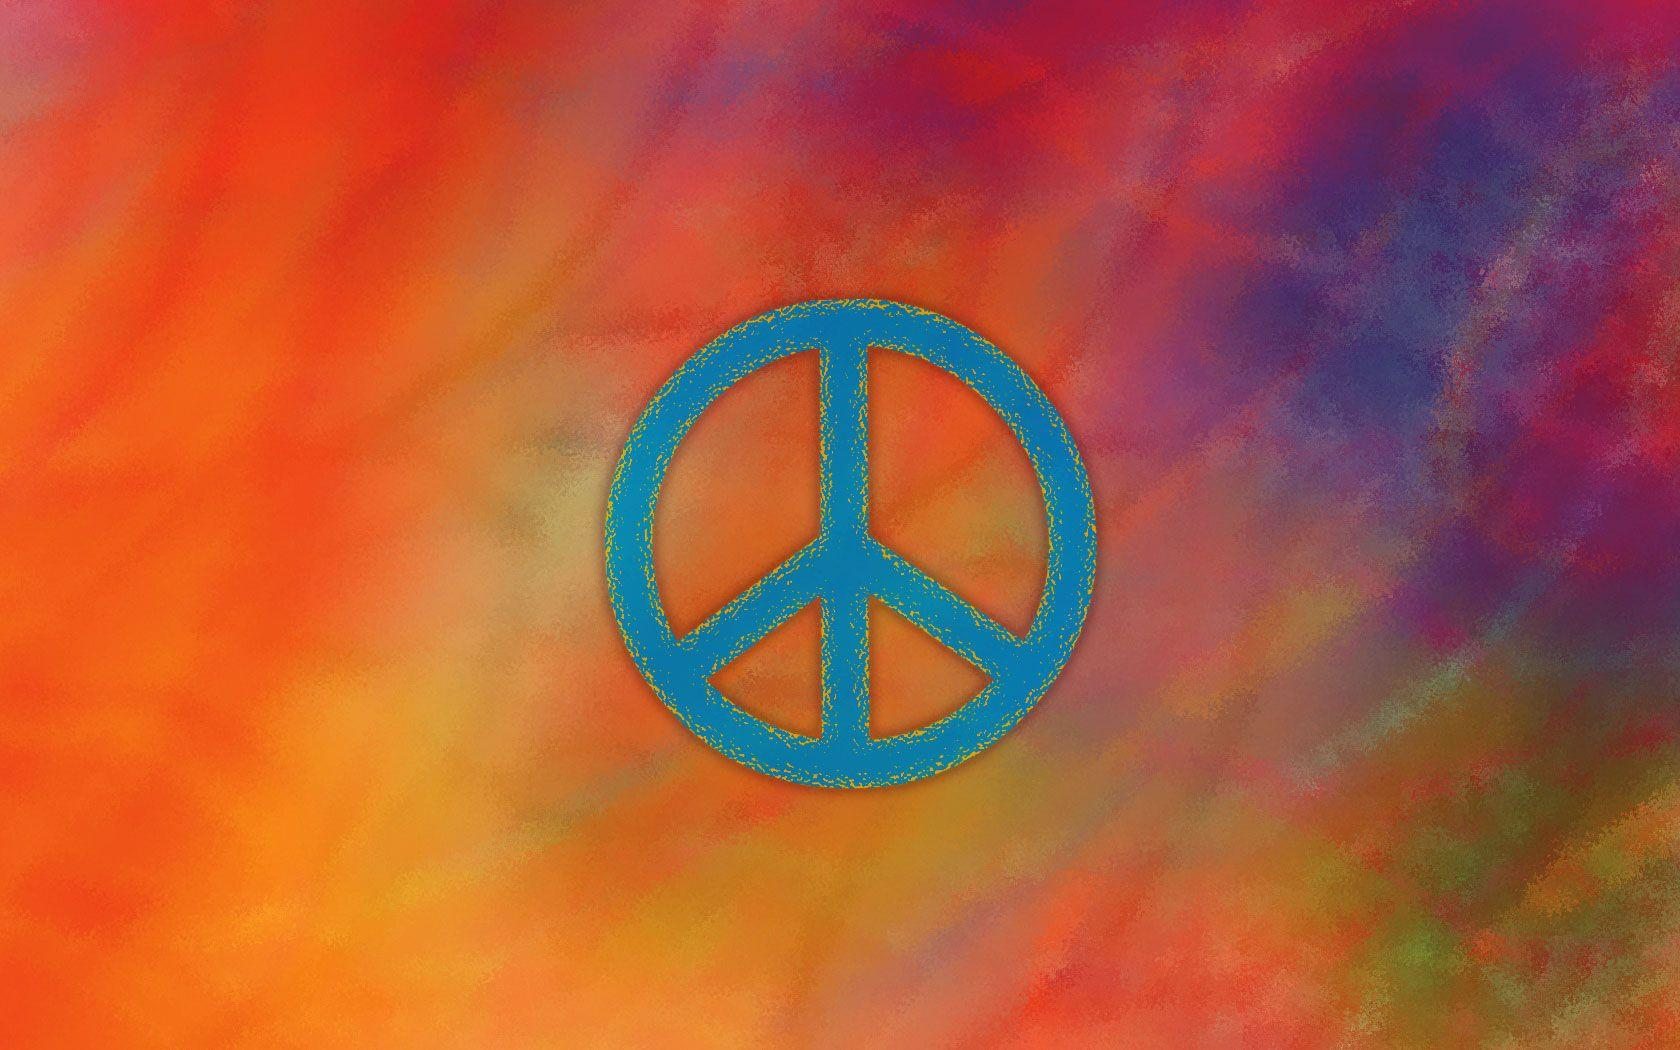 peace logo wallpapers - wallpaper cave